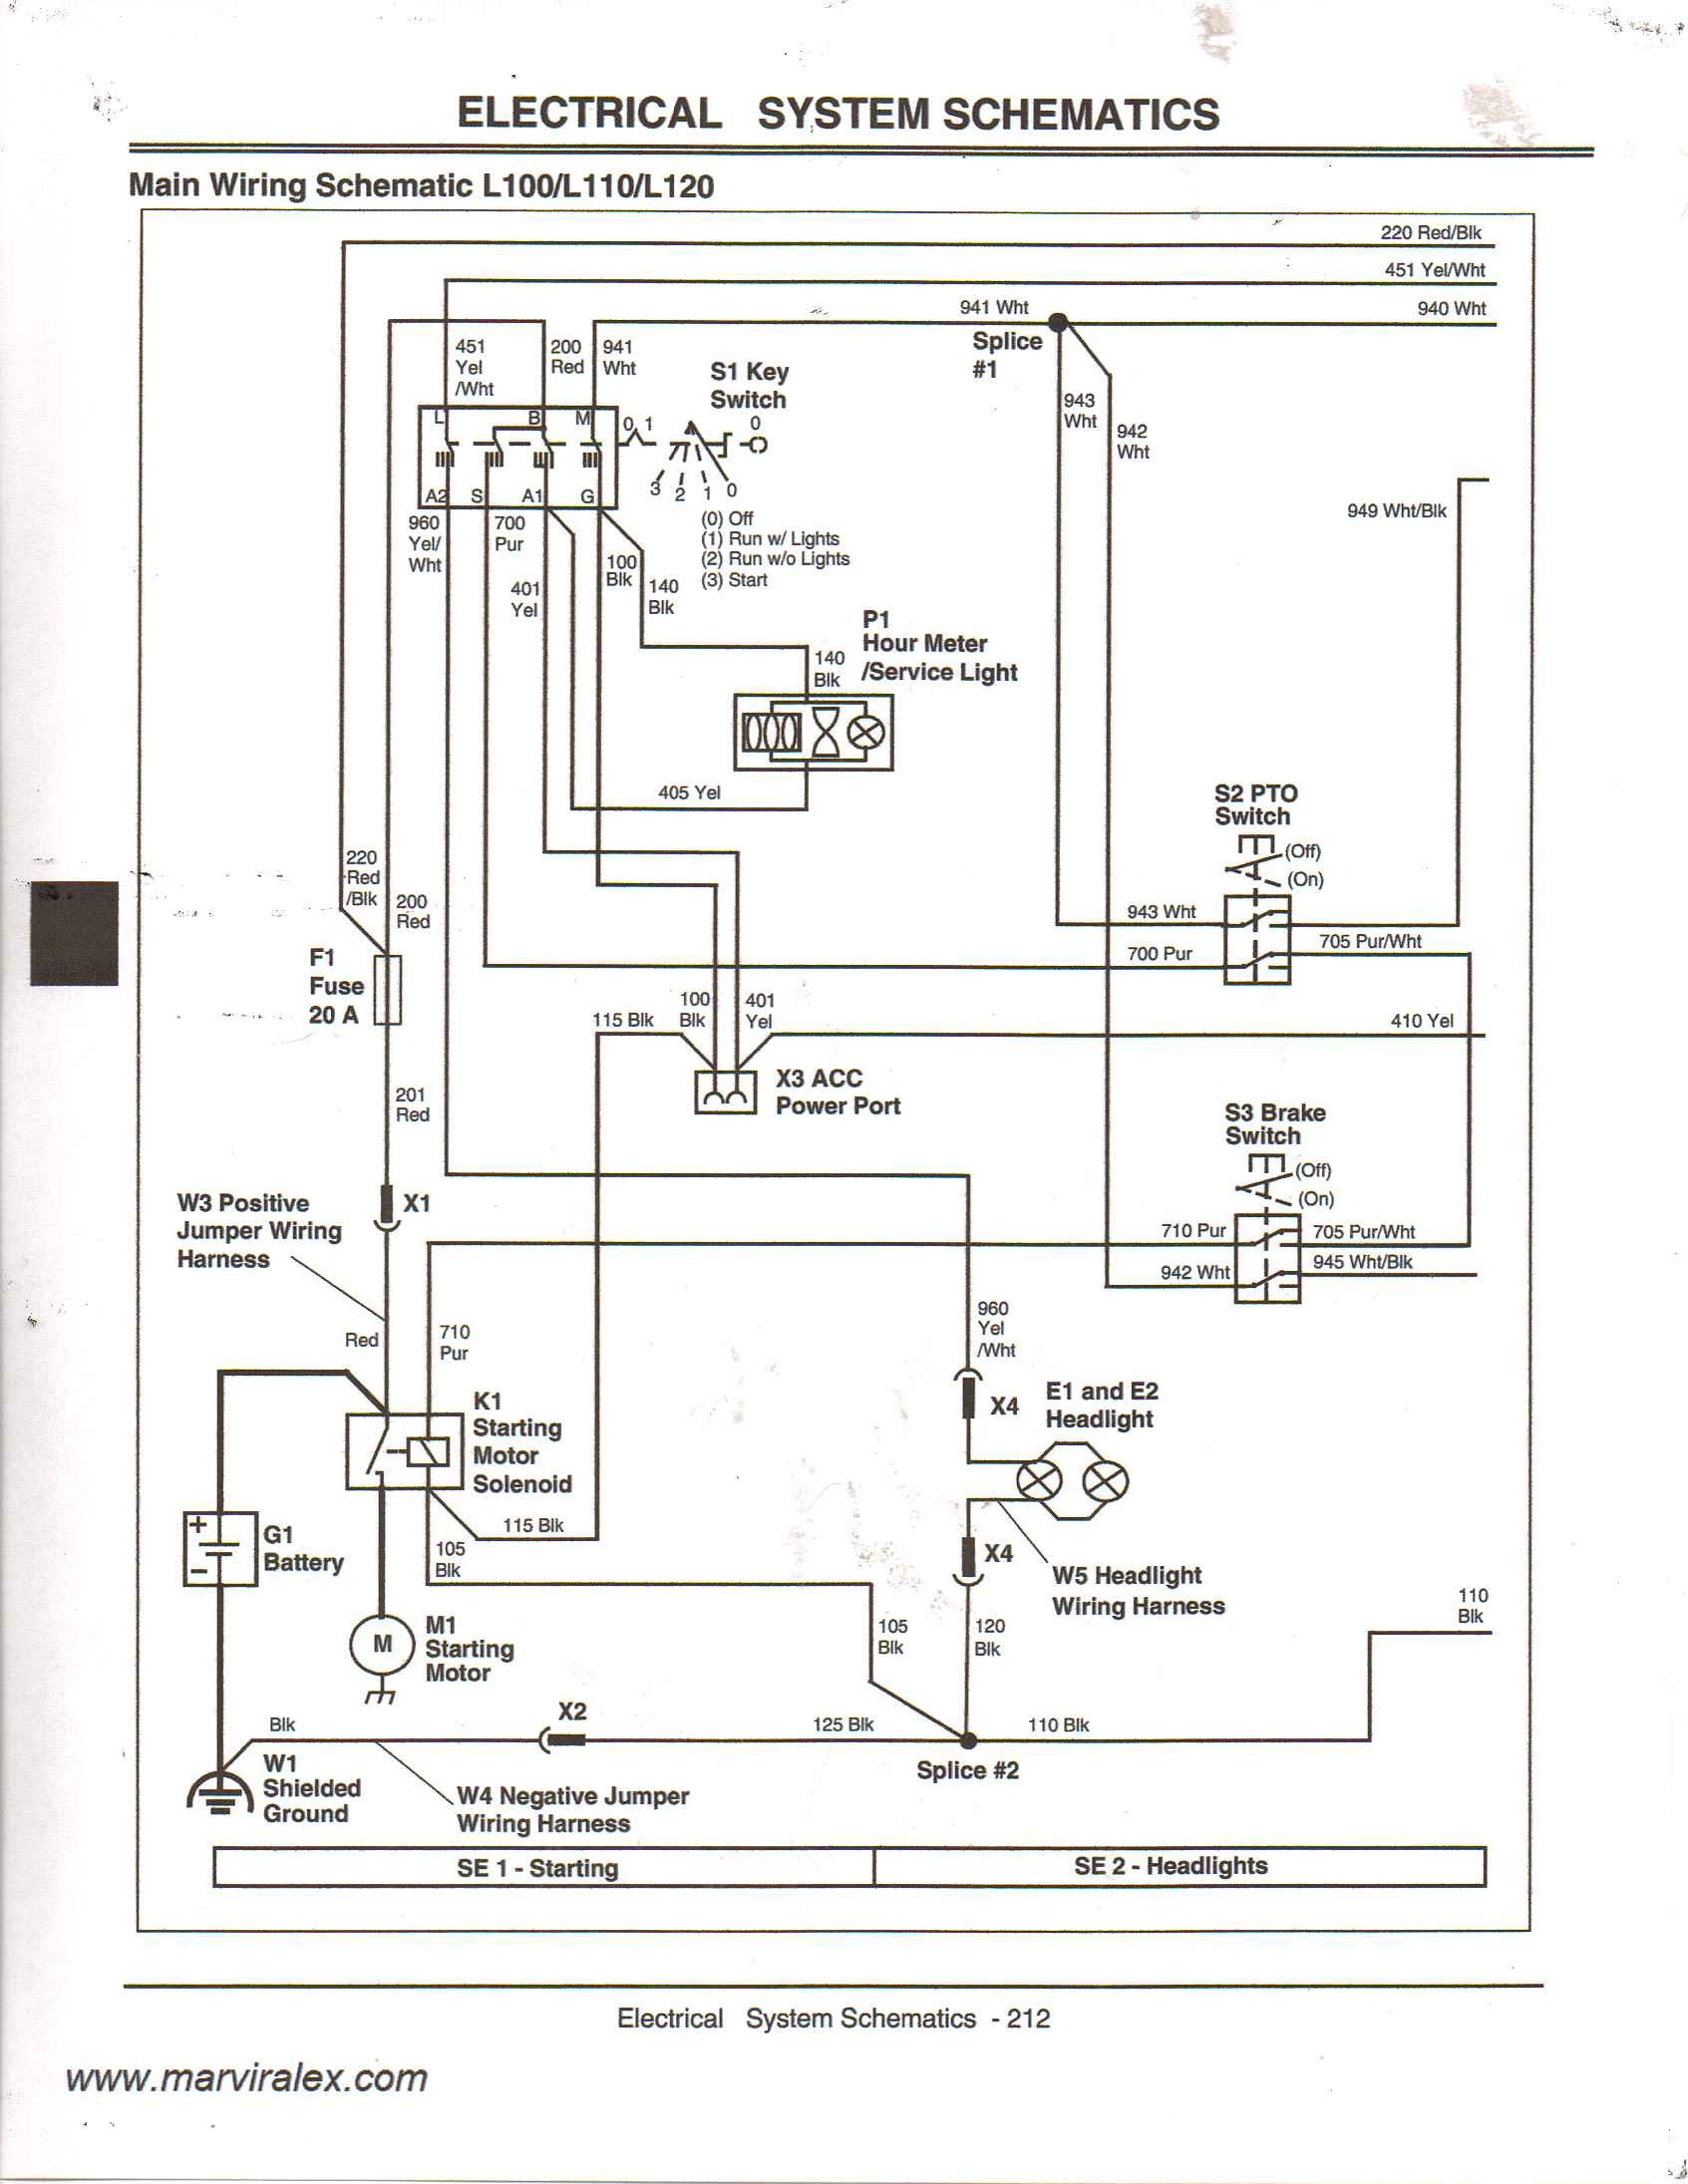 A Wiring Diagram for A 345 Jd Tractor Cb 4290] for John Deere 1050 Tractor Wiring Diagram Of A Wiring Diagram for A 345 Jd Tractor